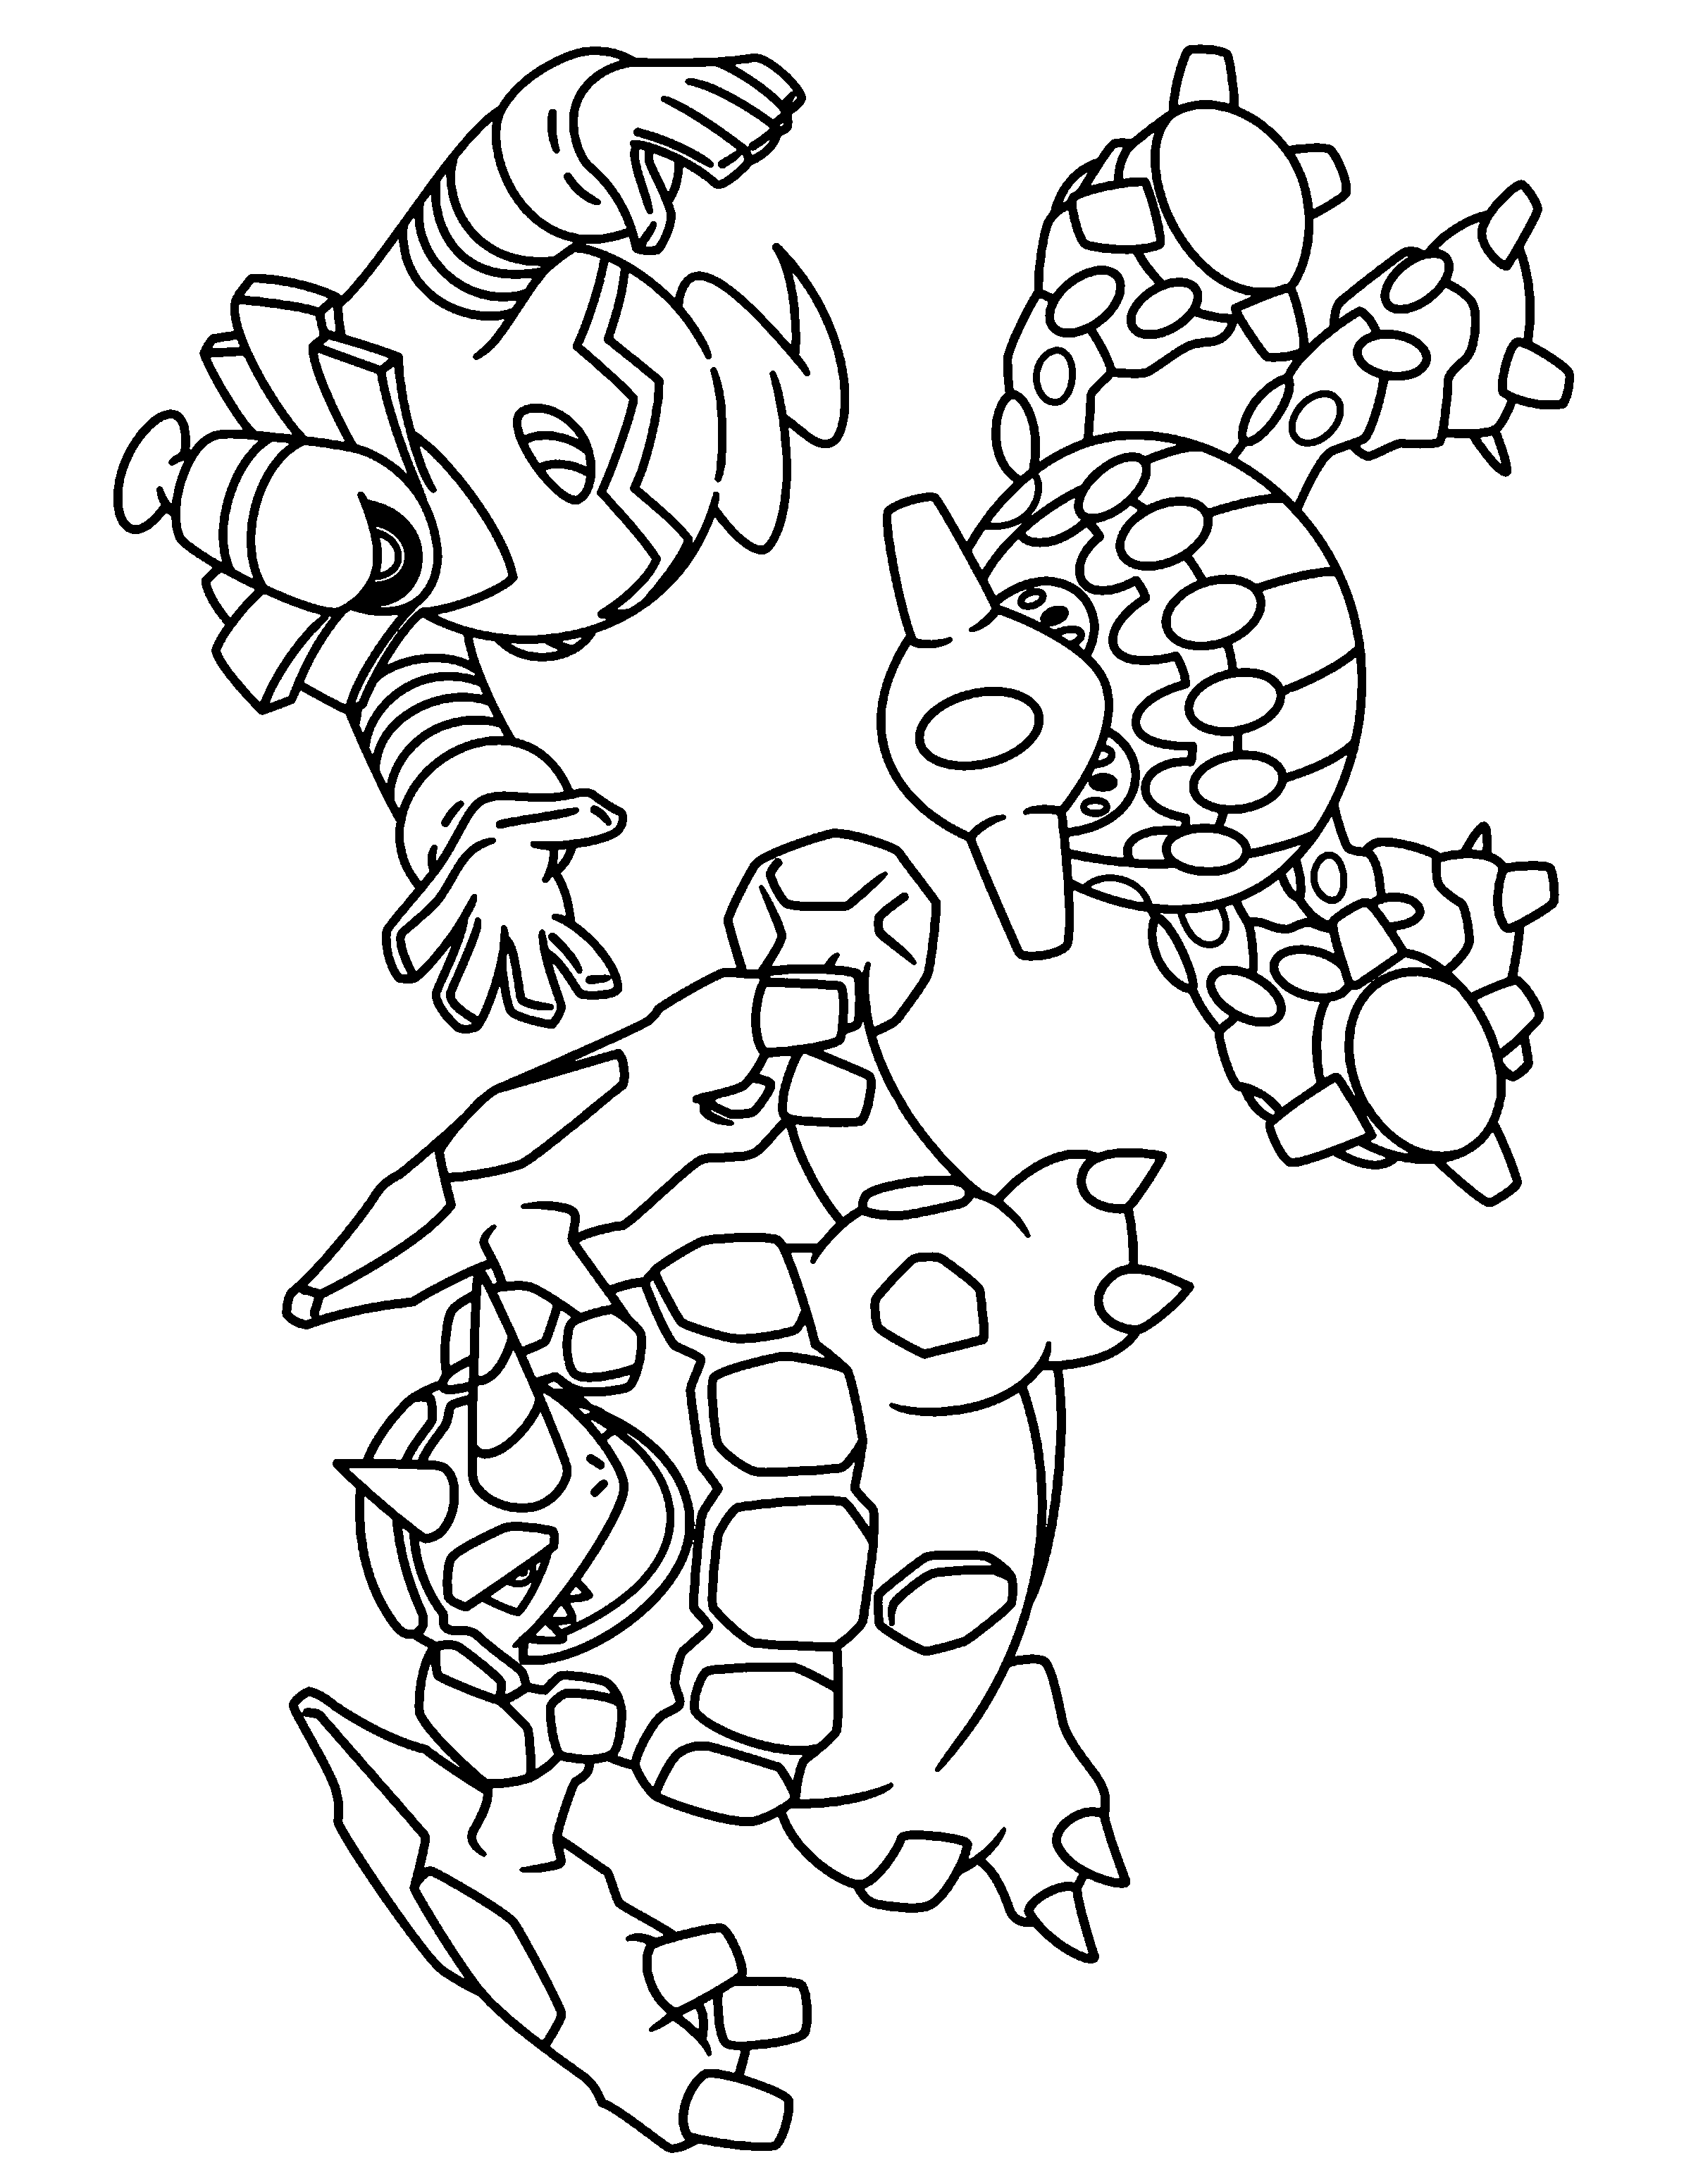 Pokemon Black And White Coloring Pages To Print - Coloring ...